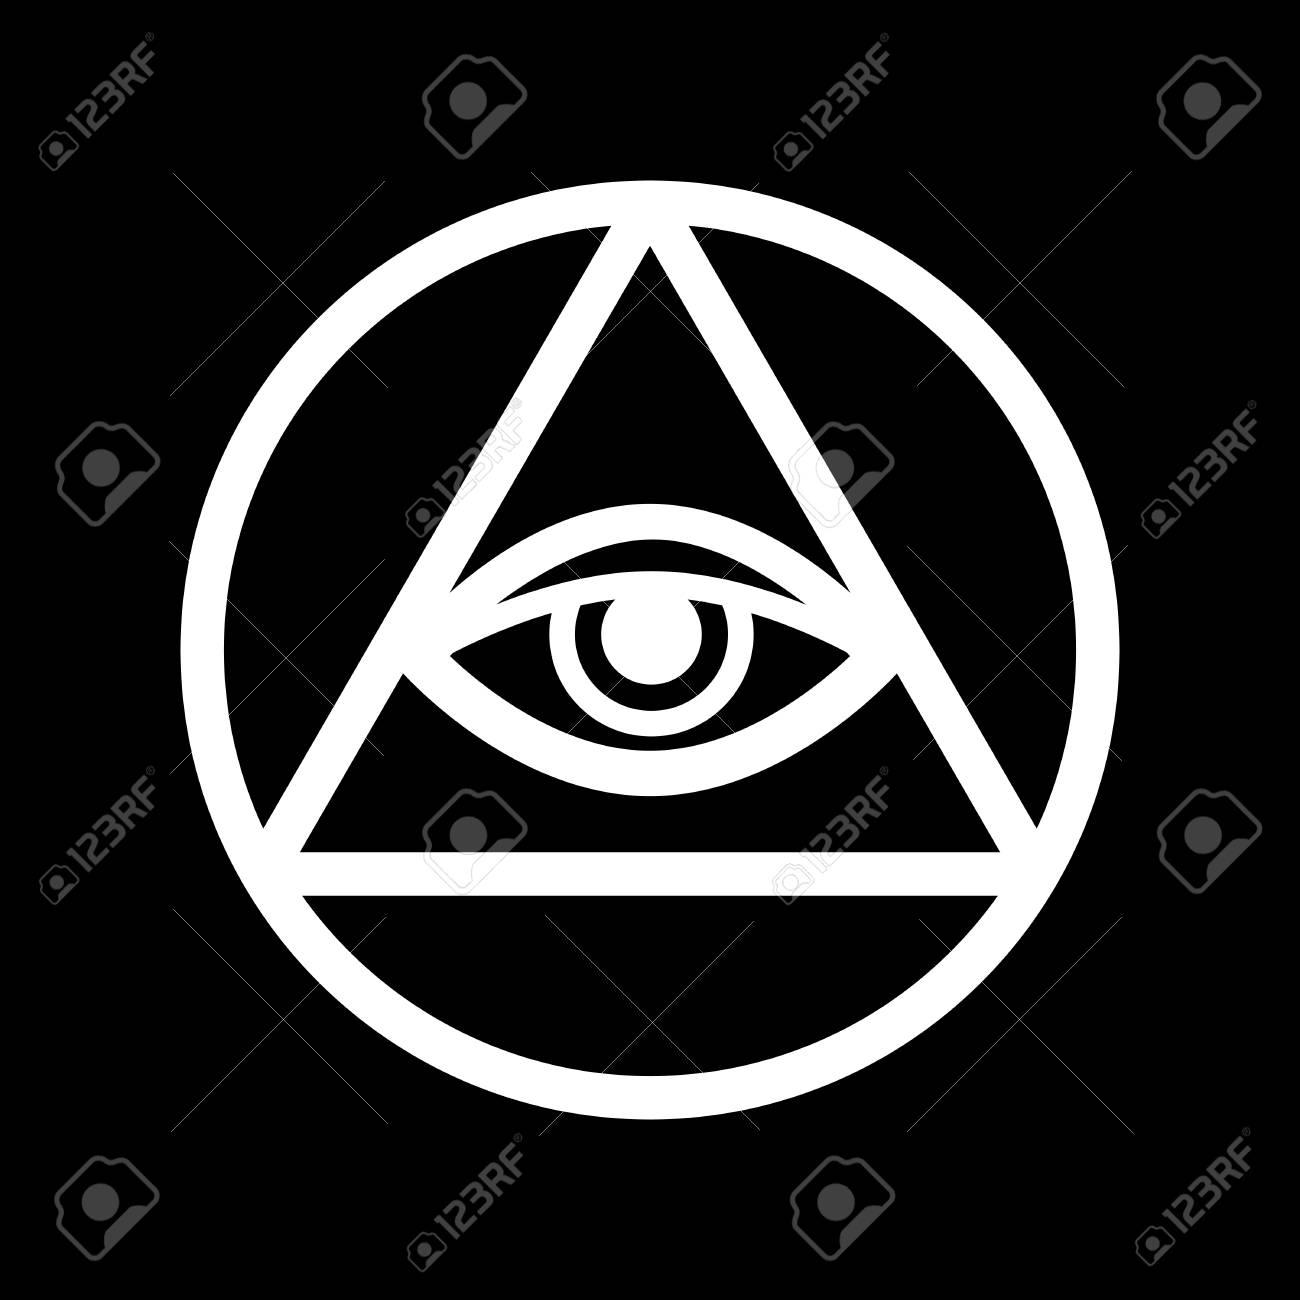 Alpha and omega stock photos royalty free business images all seeing eye of god the eye of providence eye of omniscience biocorpaavc Choice Image